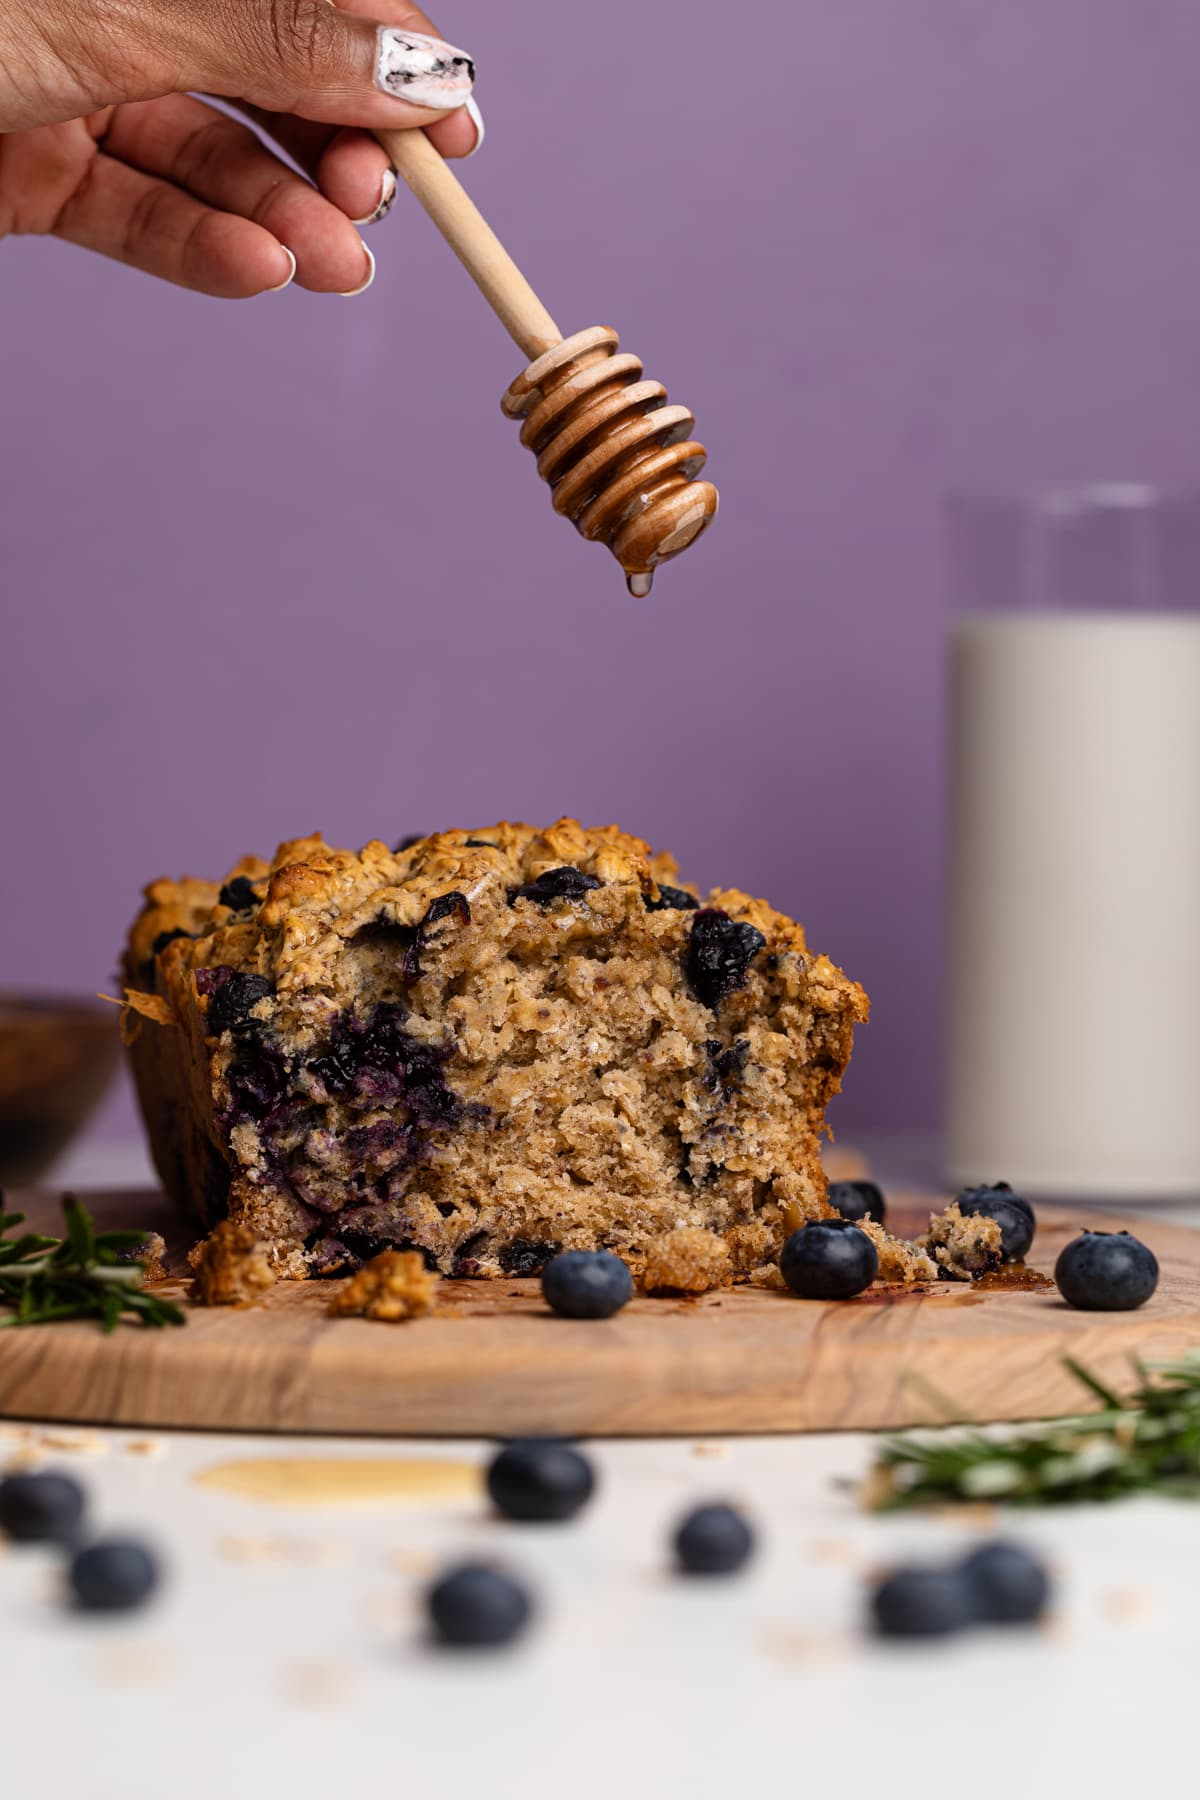 Healthy Blueberry Oatmeal Breakfast Bread loaf with honey being drizzled on top